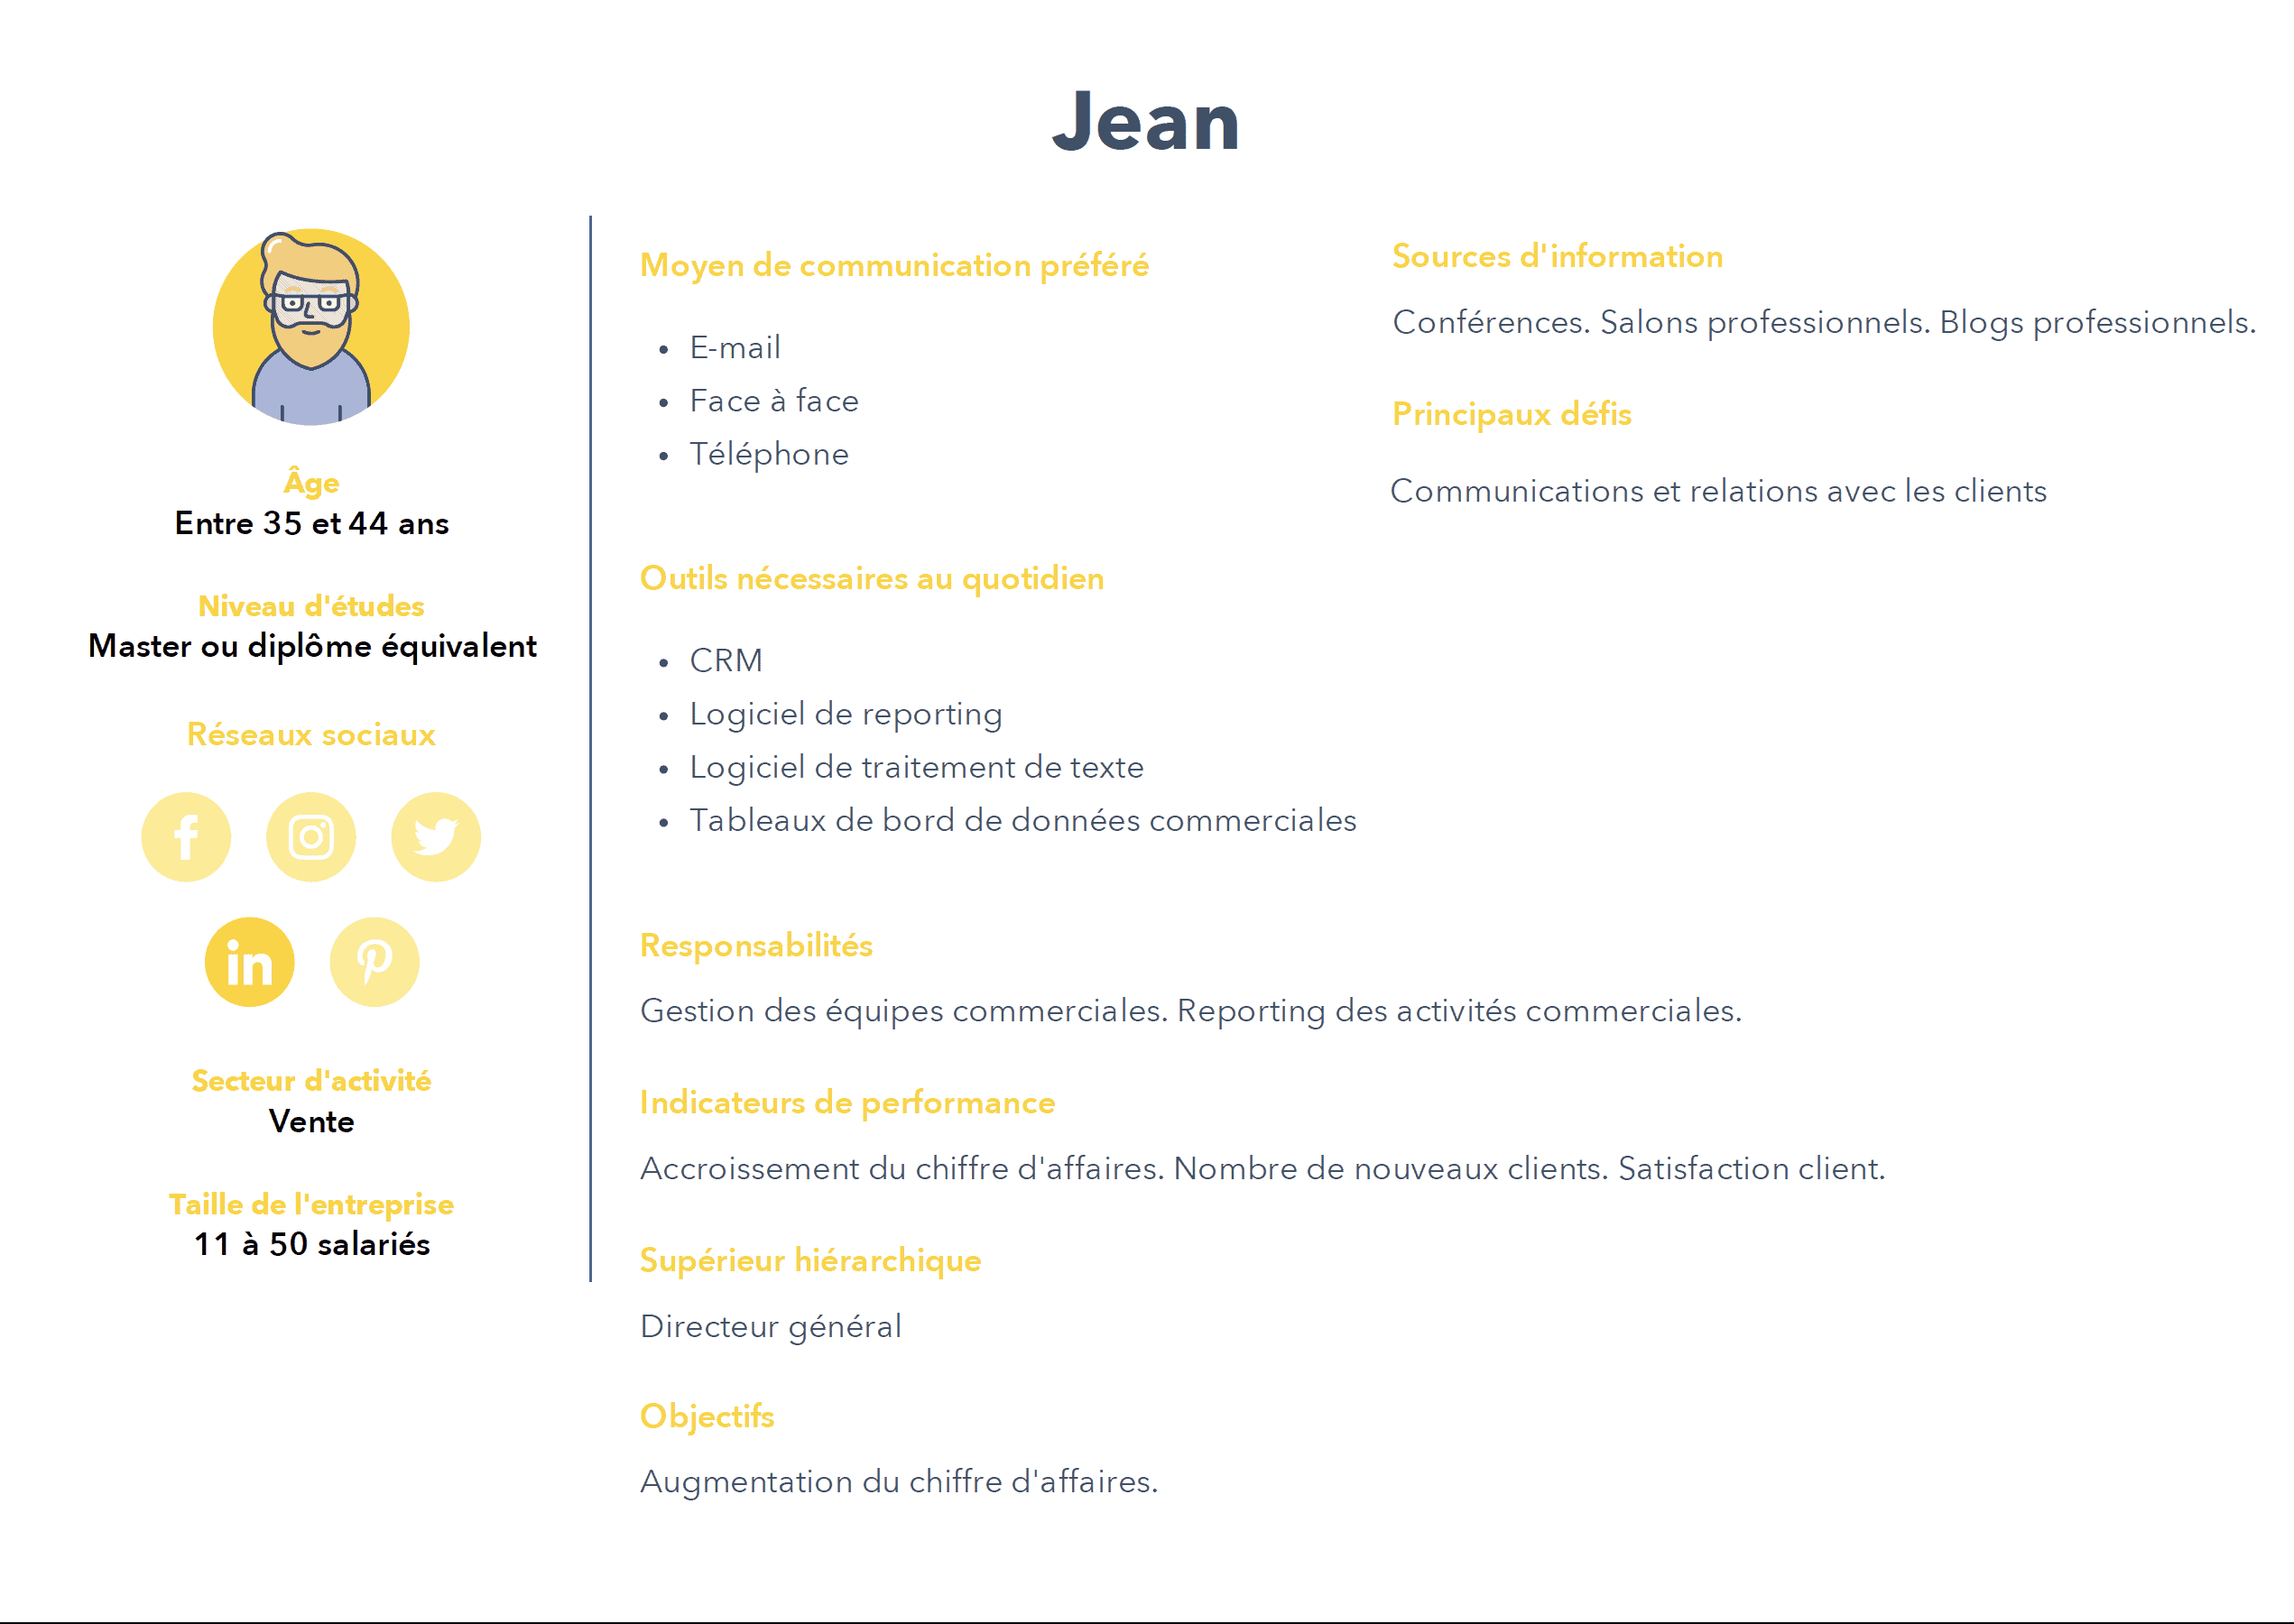 exemple-persona-marketing-saas